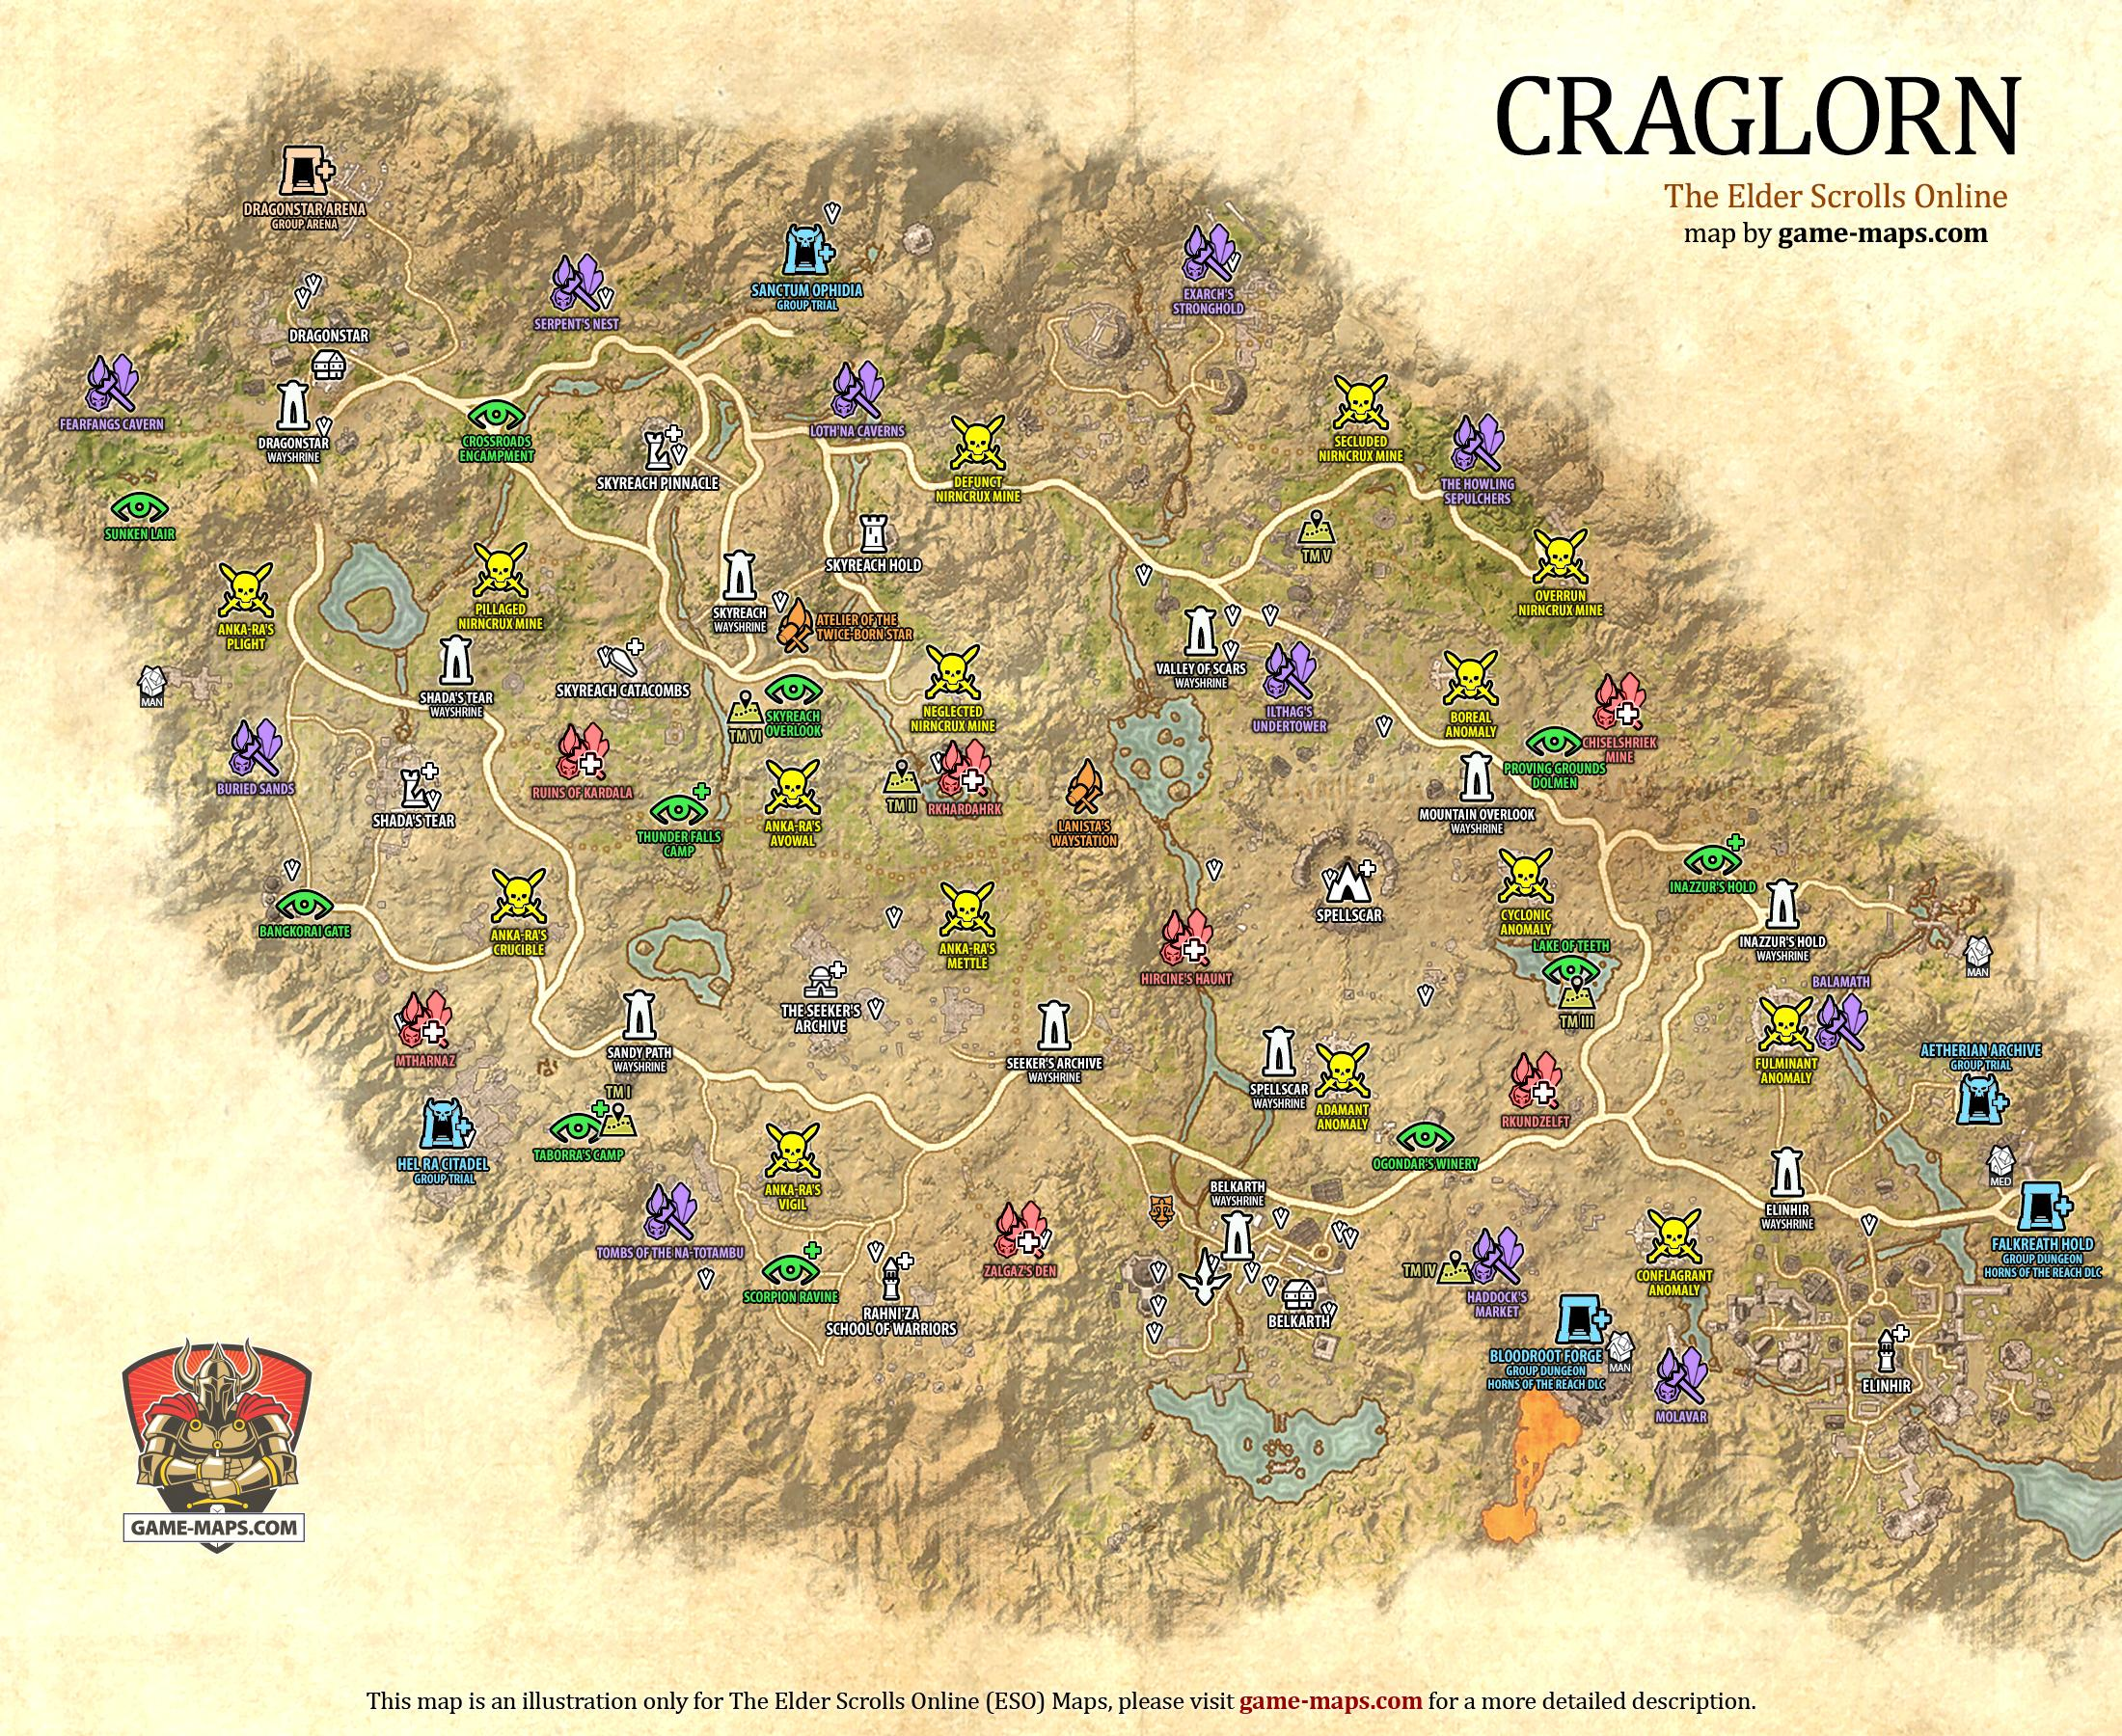 Woodworker Survey - Craglorn I by charlmgn | Photobucket